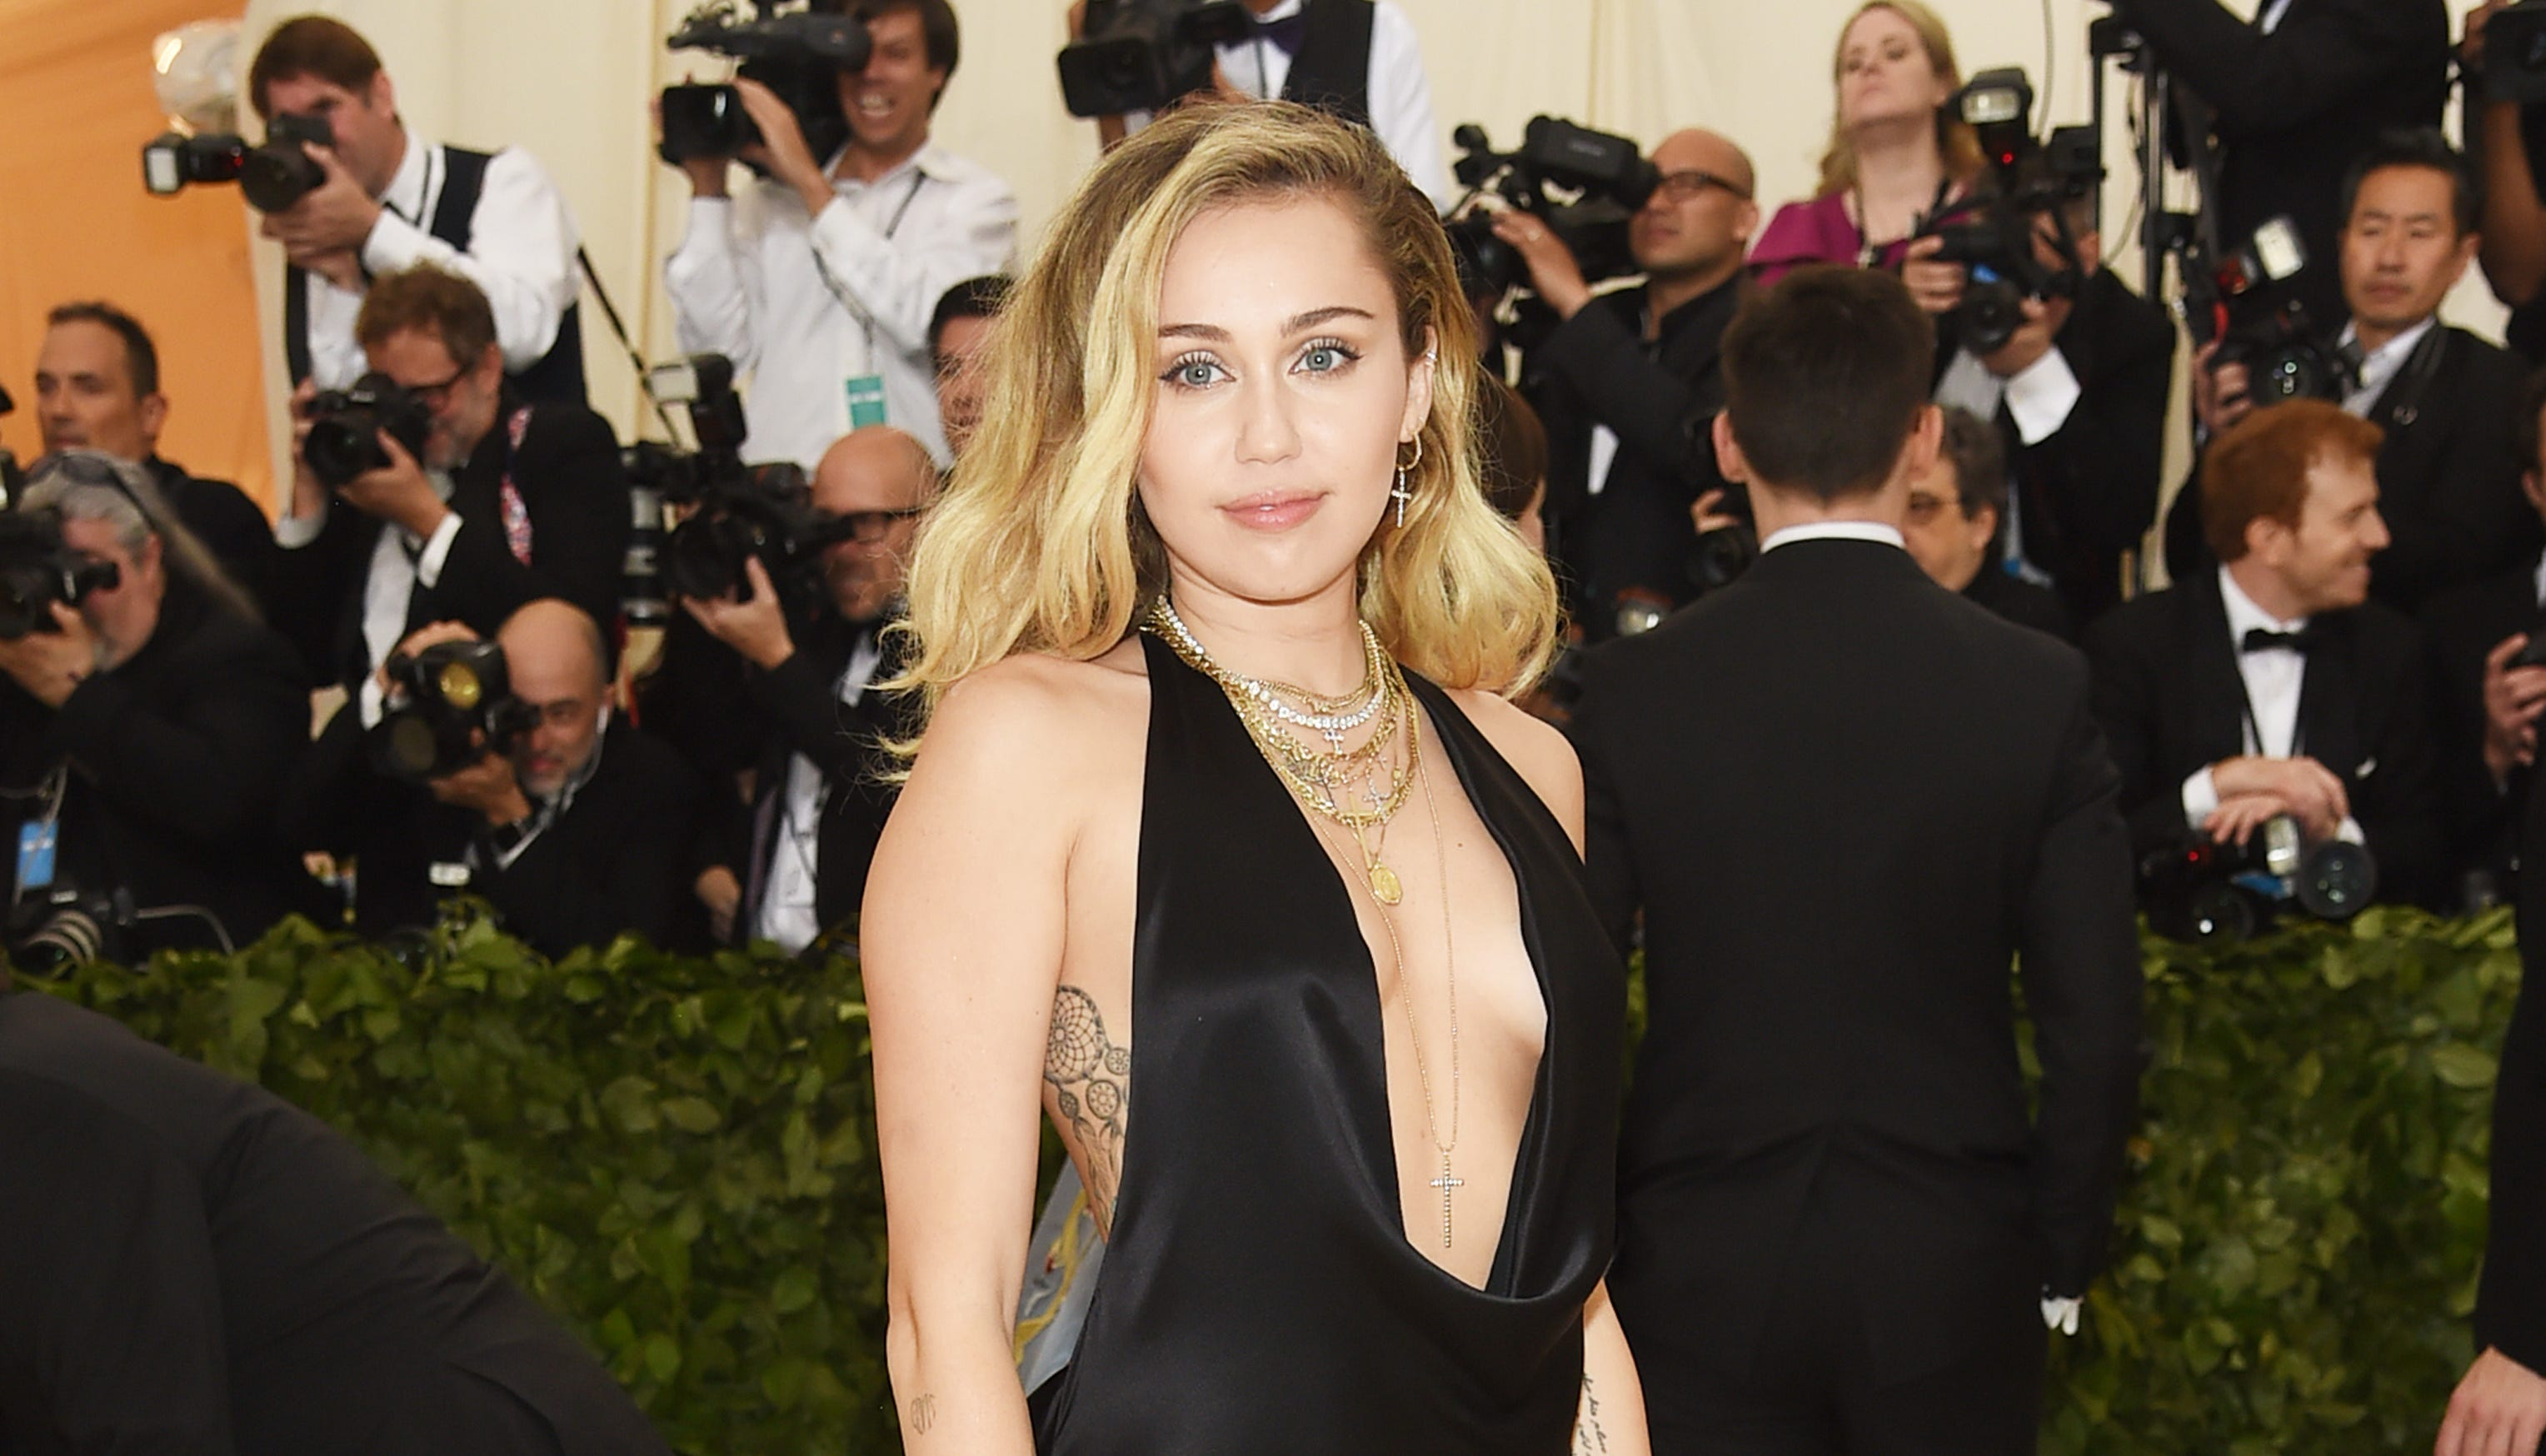 NEW YORK, NY - MAY 07: Miley Cyrus attends the Heavenly Bodies: Fashion & The Catholic Imagination Costume Institute Gala at The Metropolitan Museum of Art on May 7, 2018 in New York City. (Photo by Jamie McCarthy/Getty Images) ORG XMIT: 775160910 ORIG FILE ID: 955762624